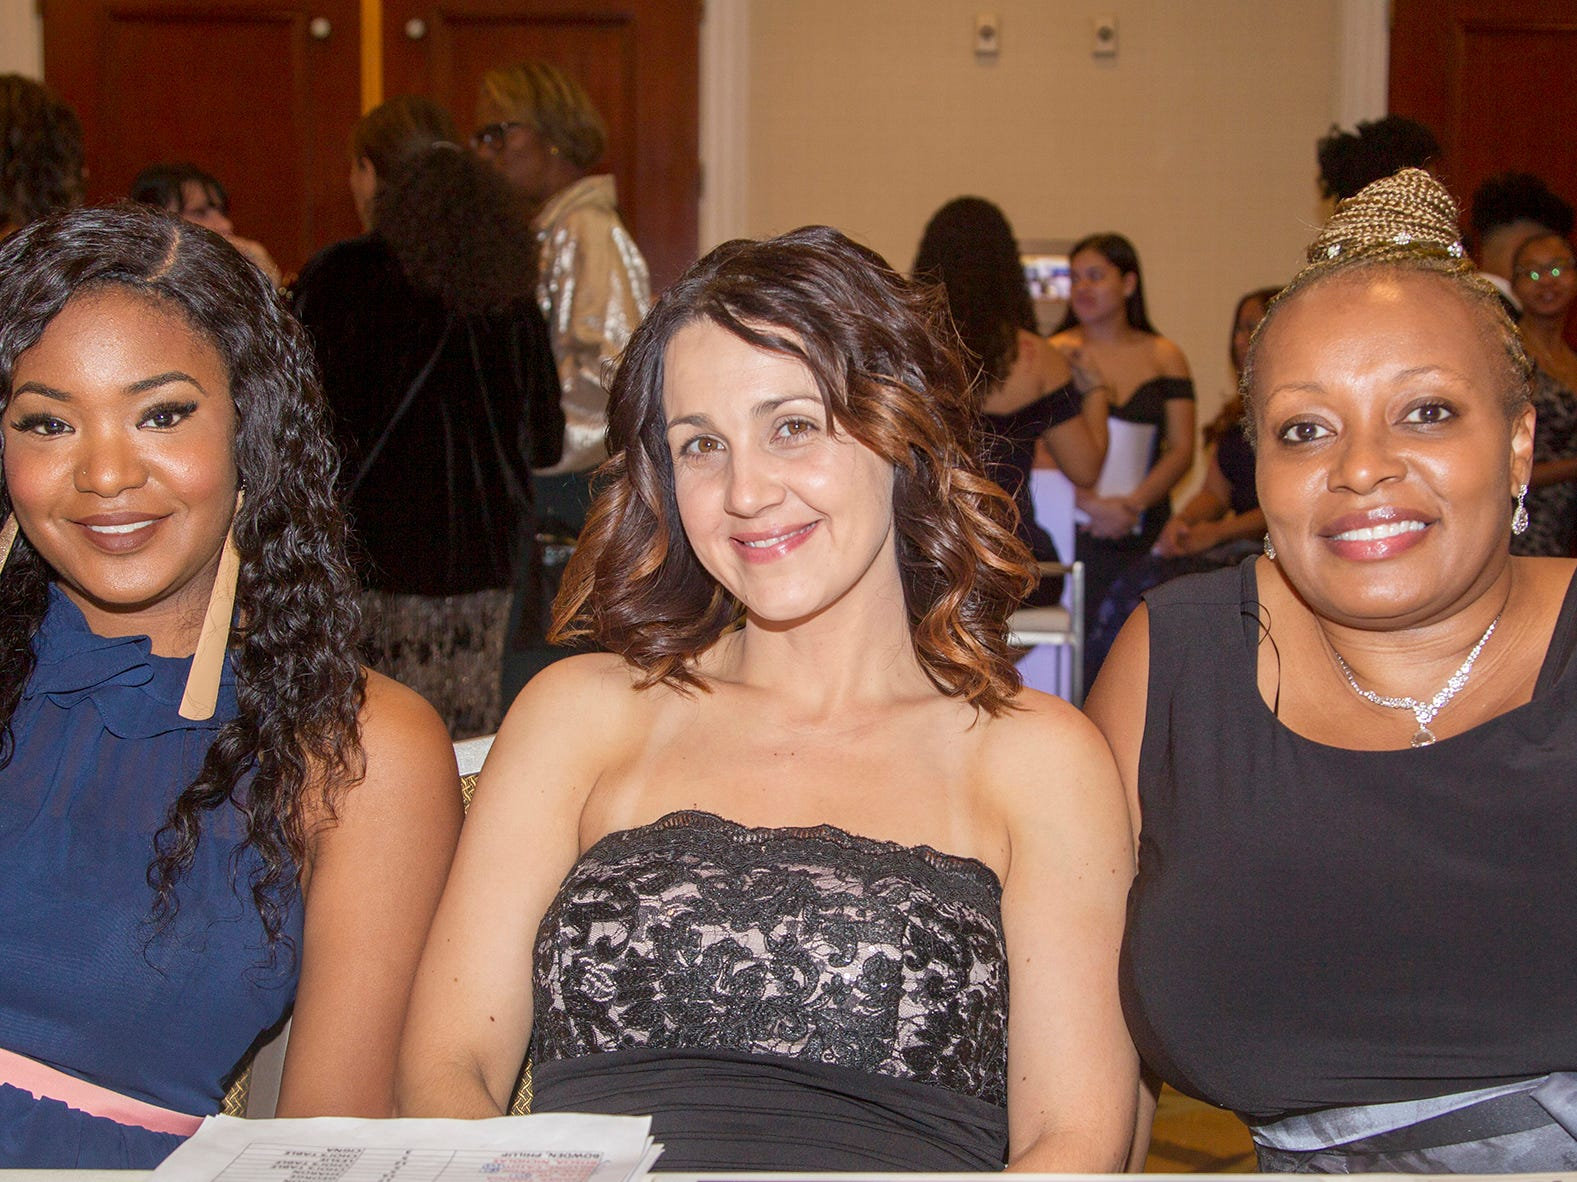 Elaine Tate, Christina Mohoney, Ariel Gibbs-Jones. Jessie Banks Foundation holds 16th annual Scholarship Awards Gala in Teaneck. 11/09/2018